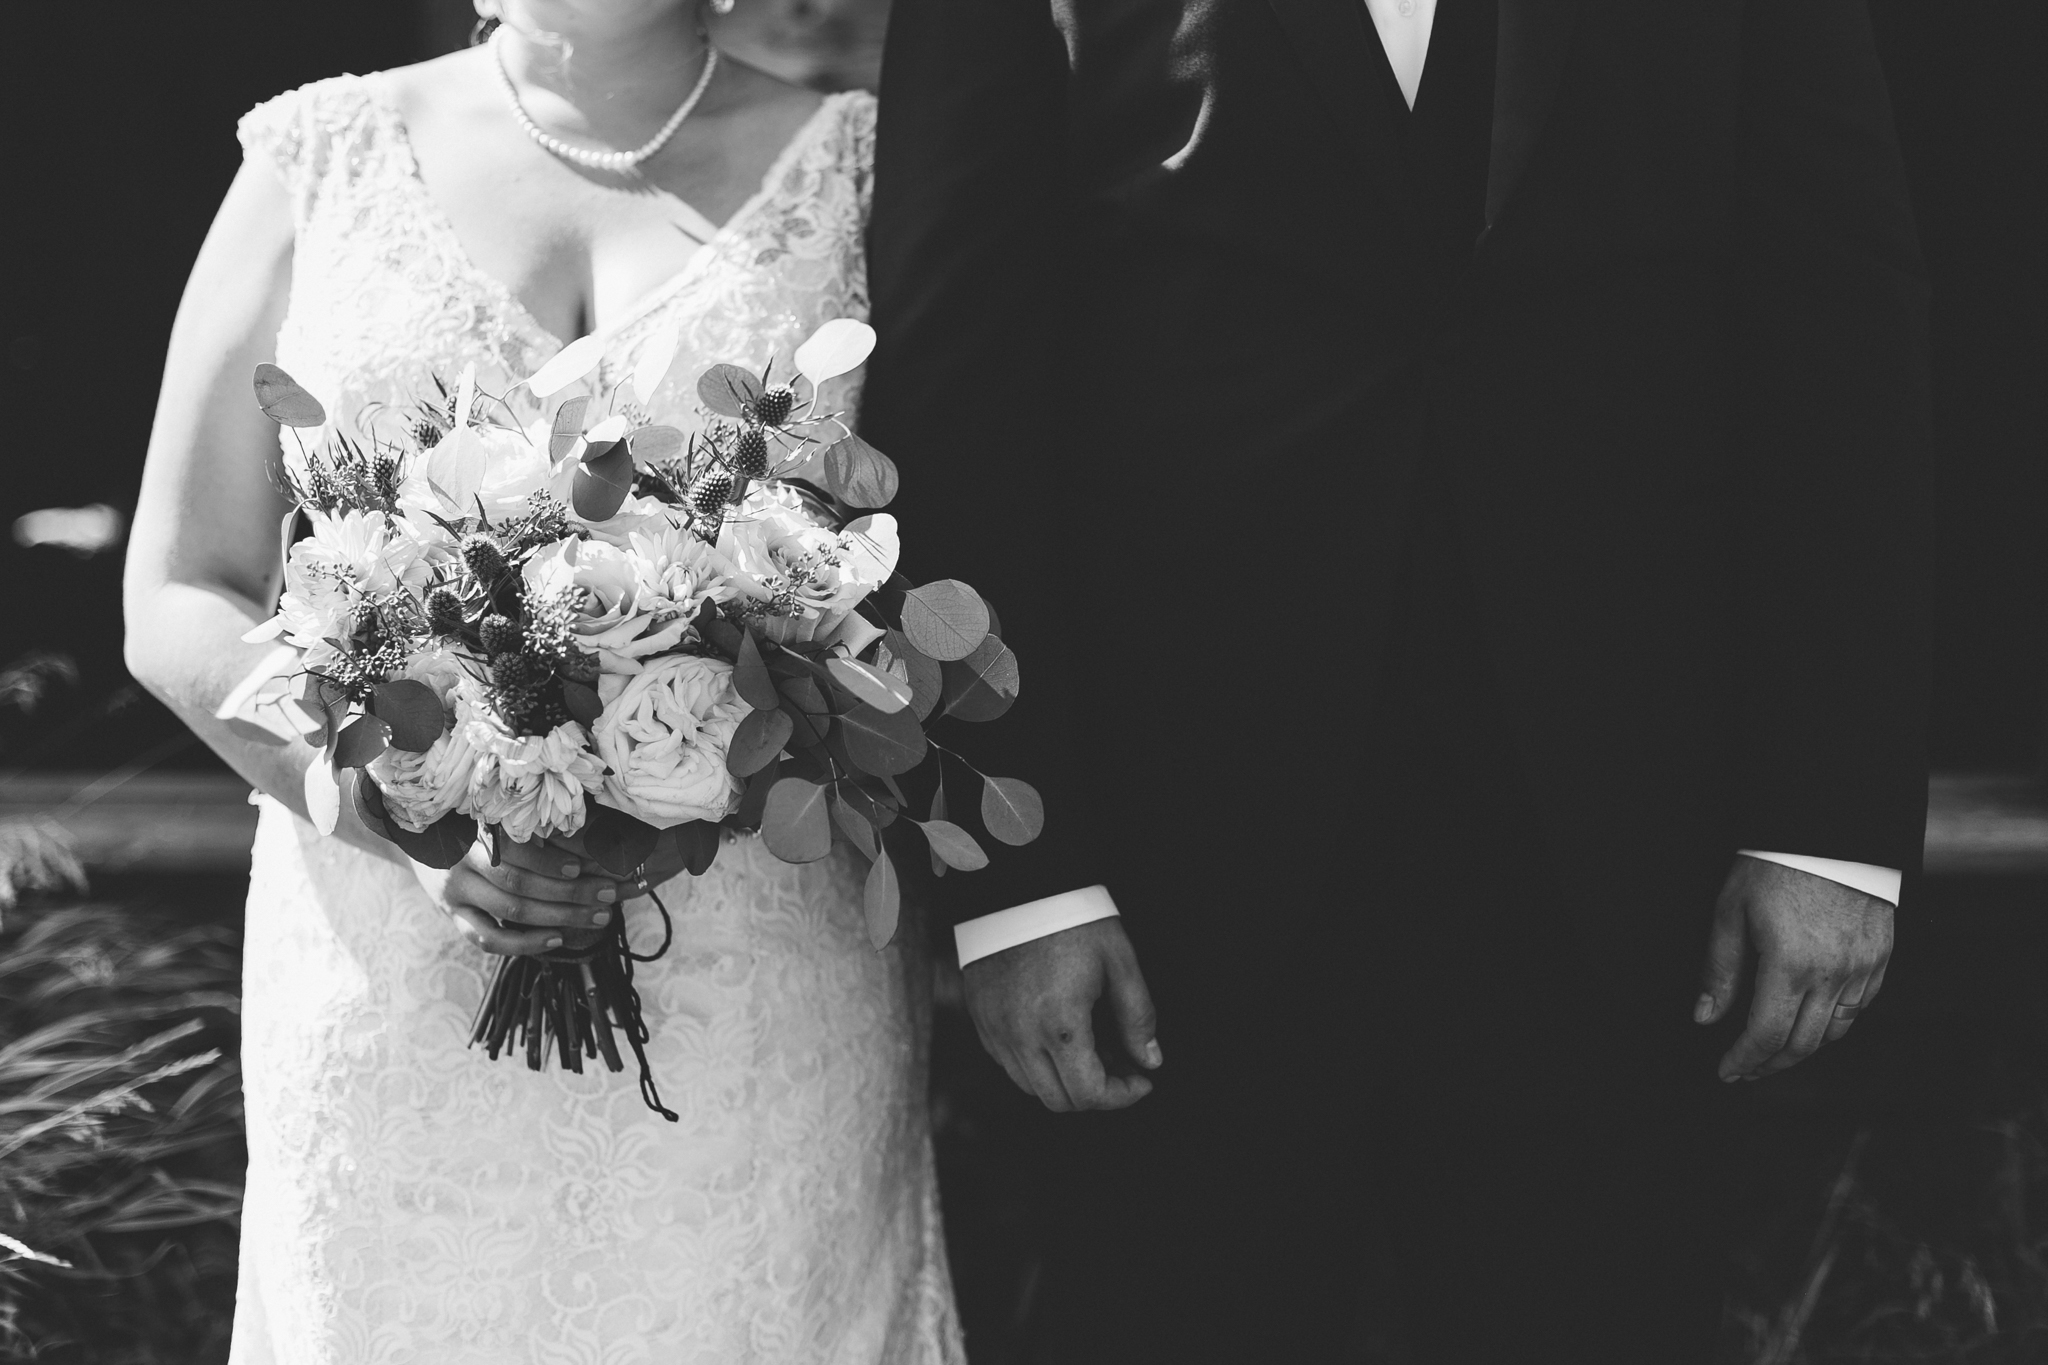 red-deer-wedding-photographer-love-and-be-loved-photography-emily-gab-photo-image-picture-126.jpg